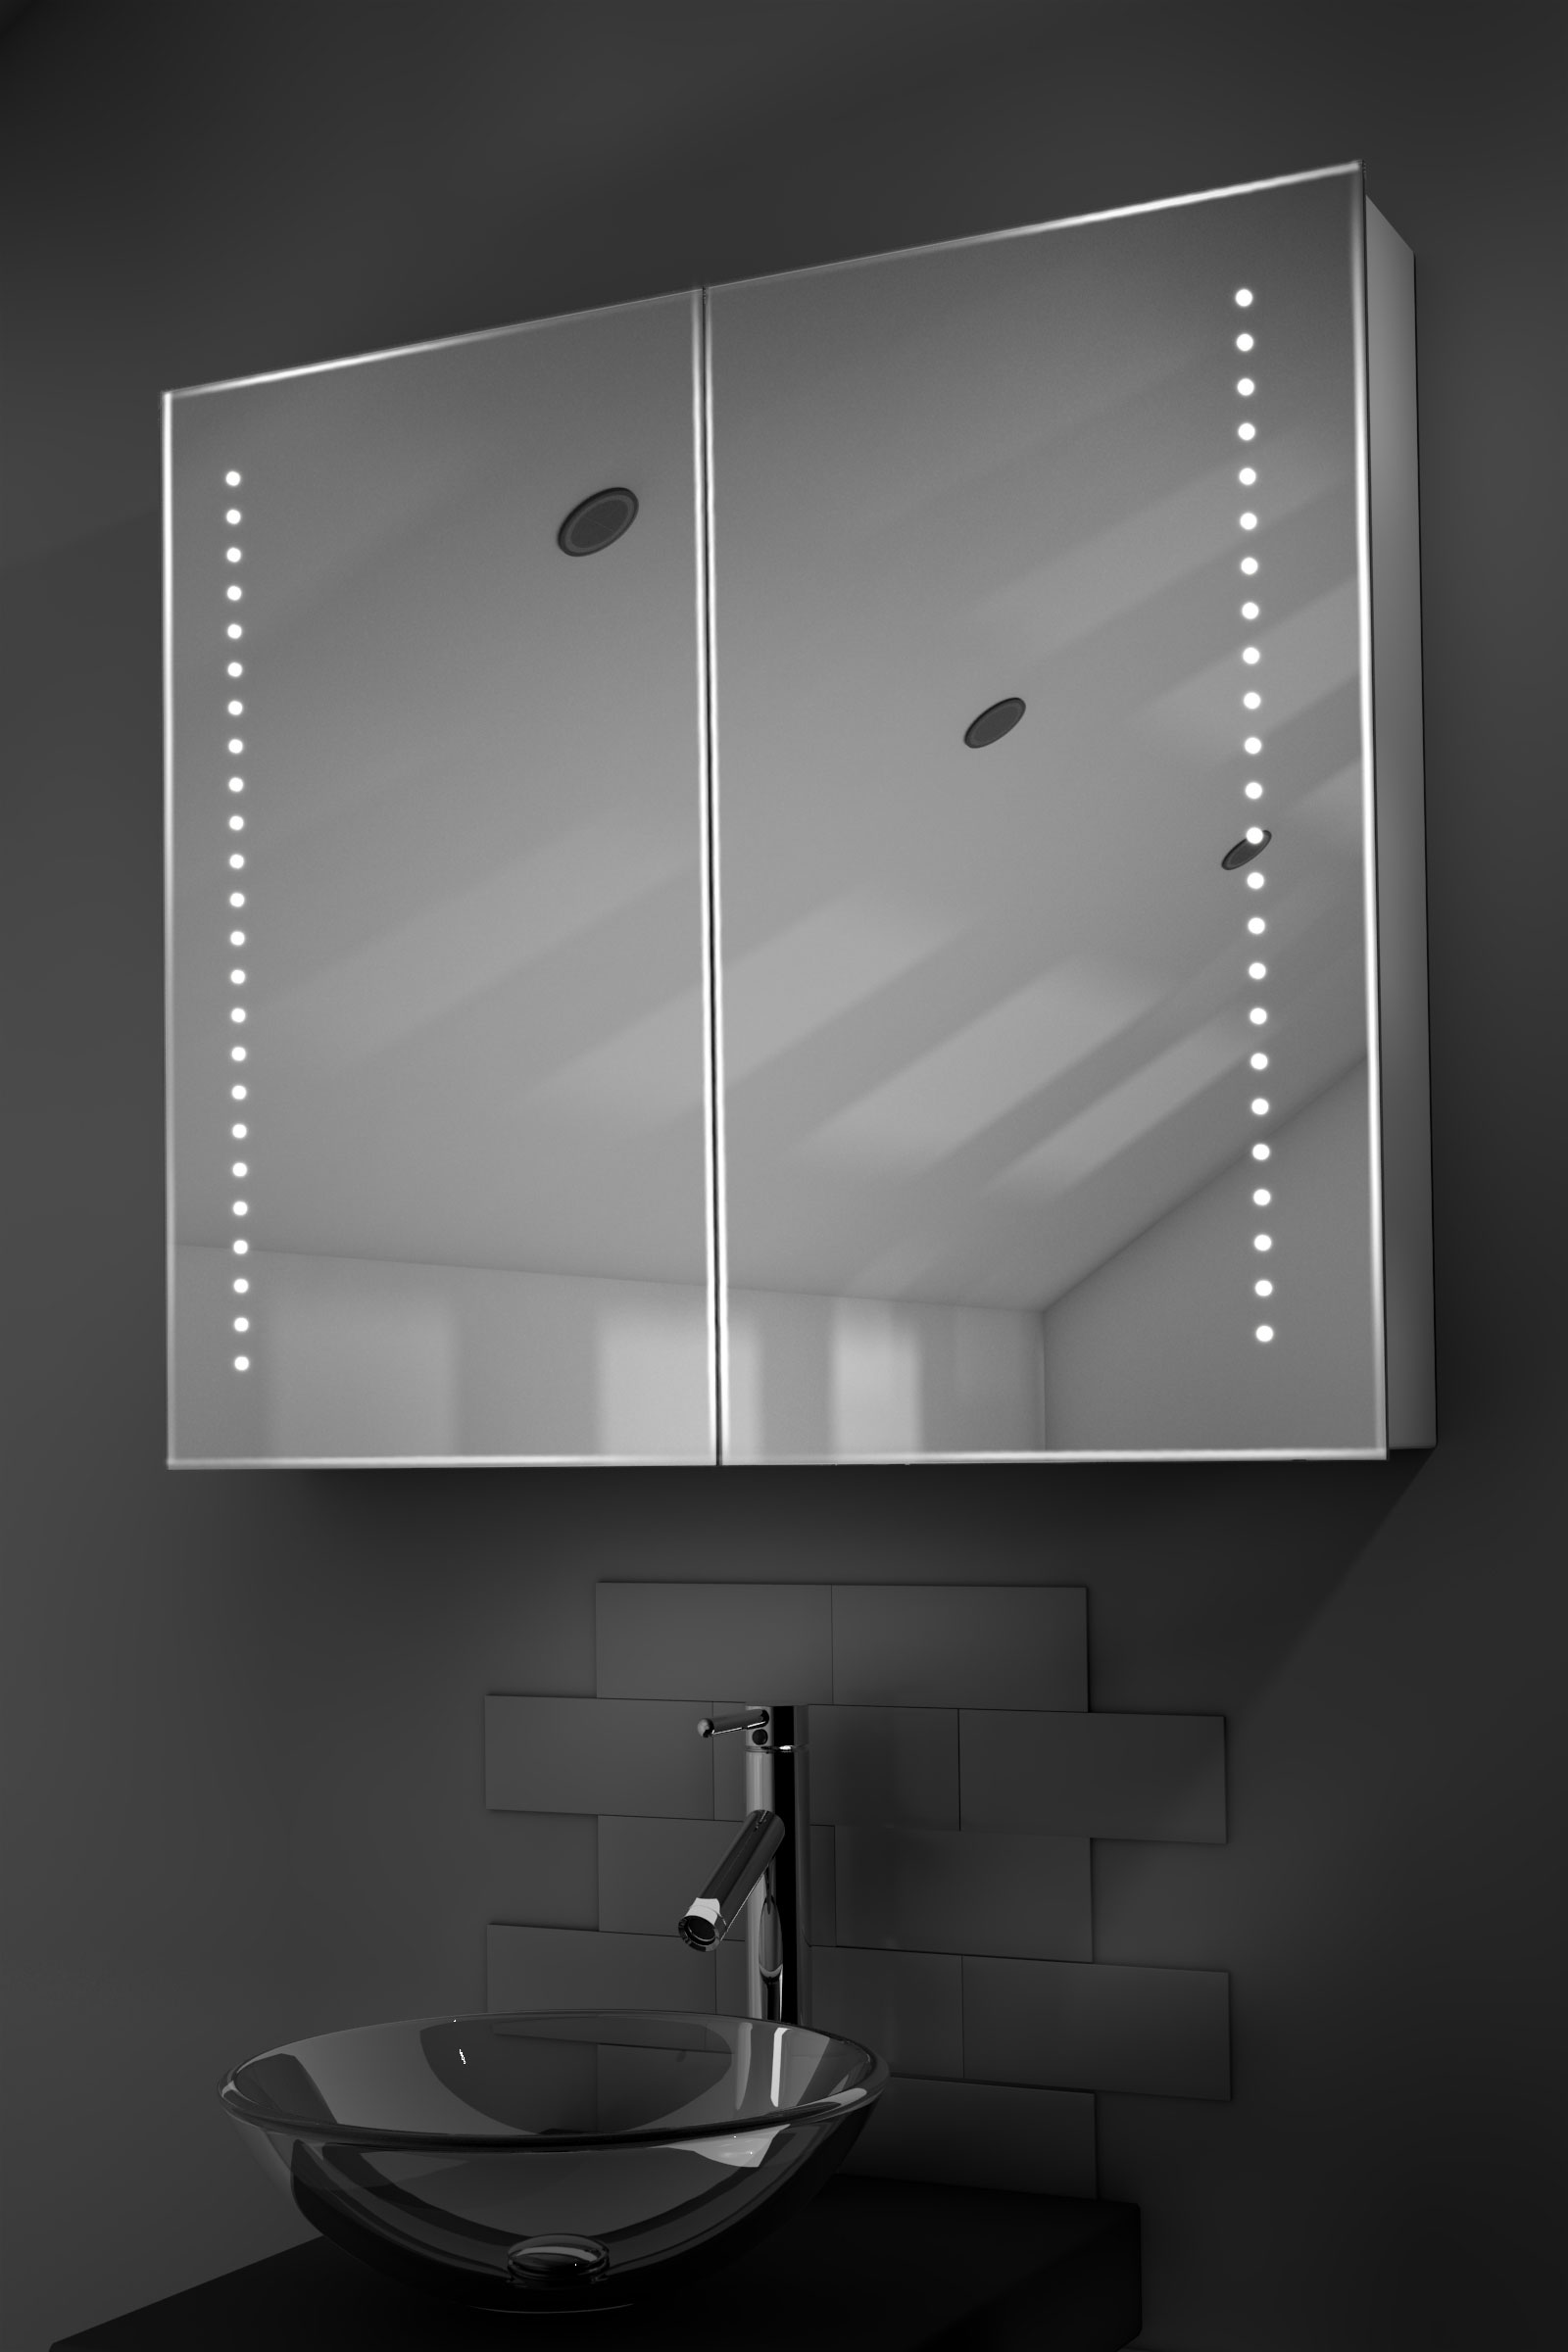 Vasos led bathroom cabinet with demister pad sensor for Bathroom cabinets led